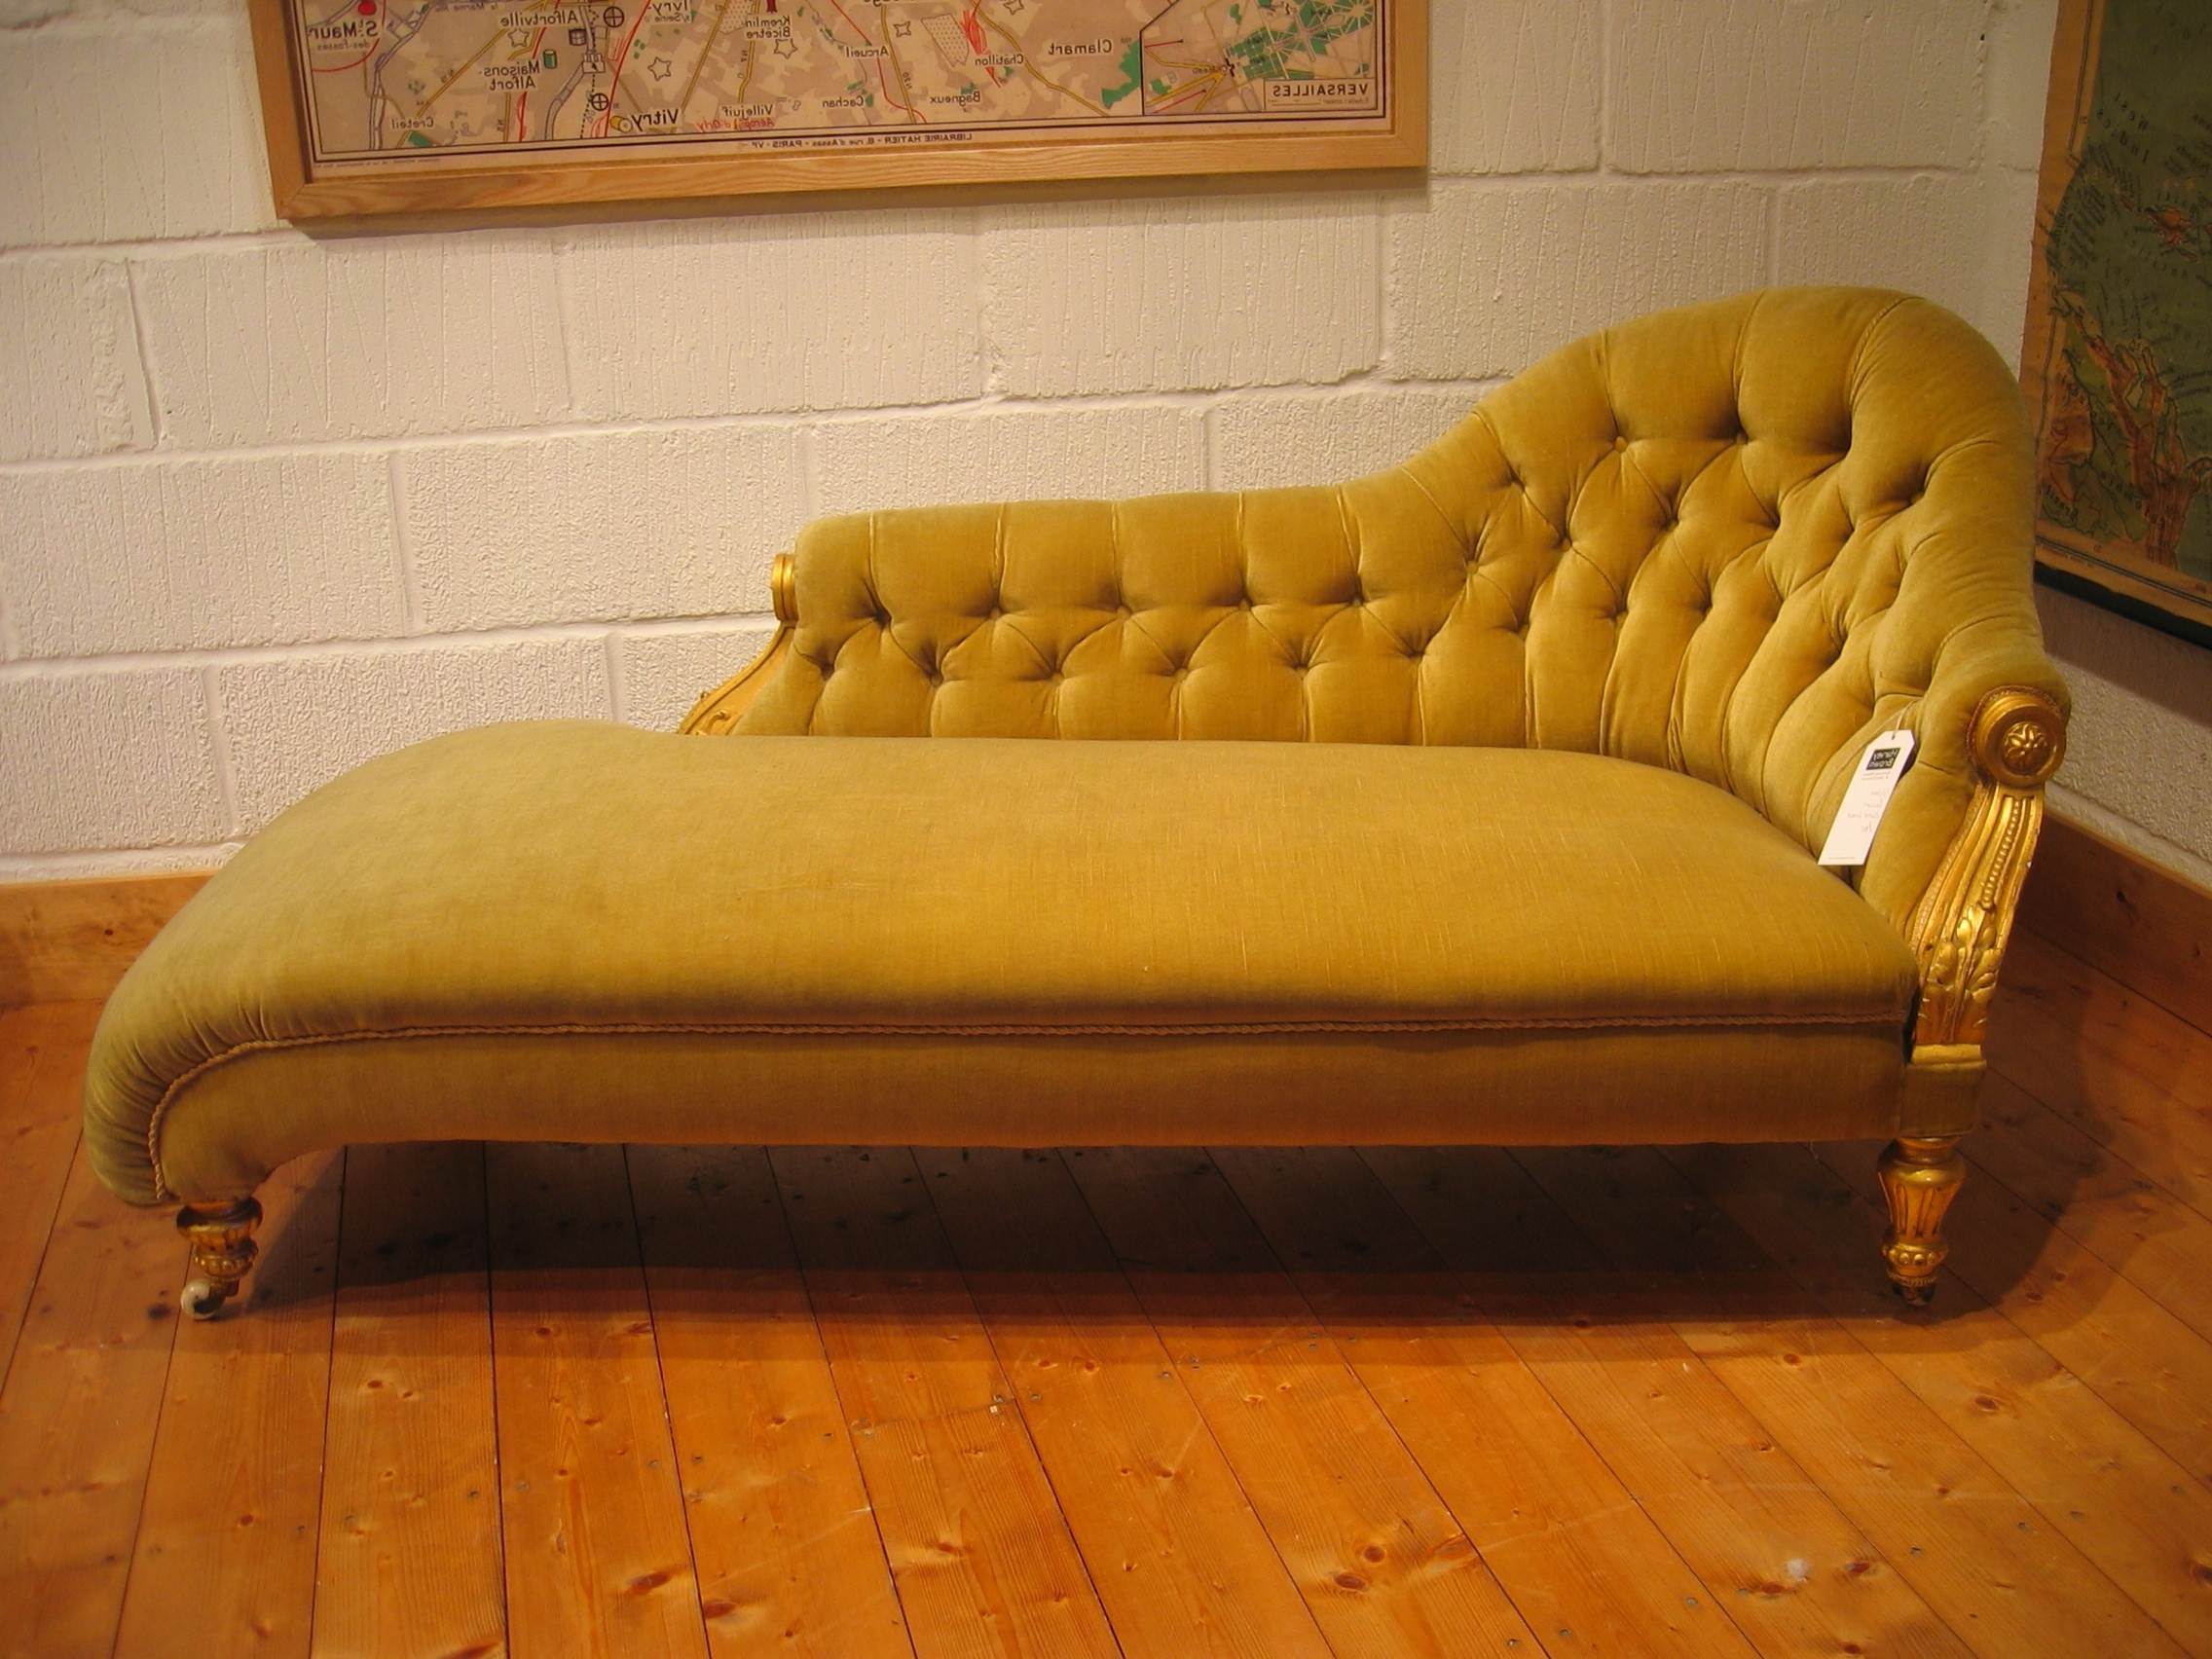 Famous Vintage Chaise Lounge Chairs Intended For Yellow Color Antique Victorian Chaise Lounge Sofa Bed With Wooden (View 13 of 15)